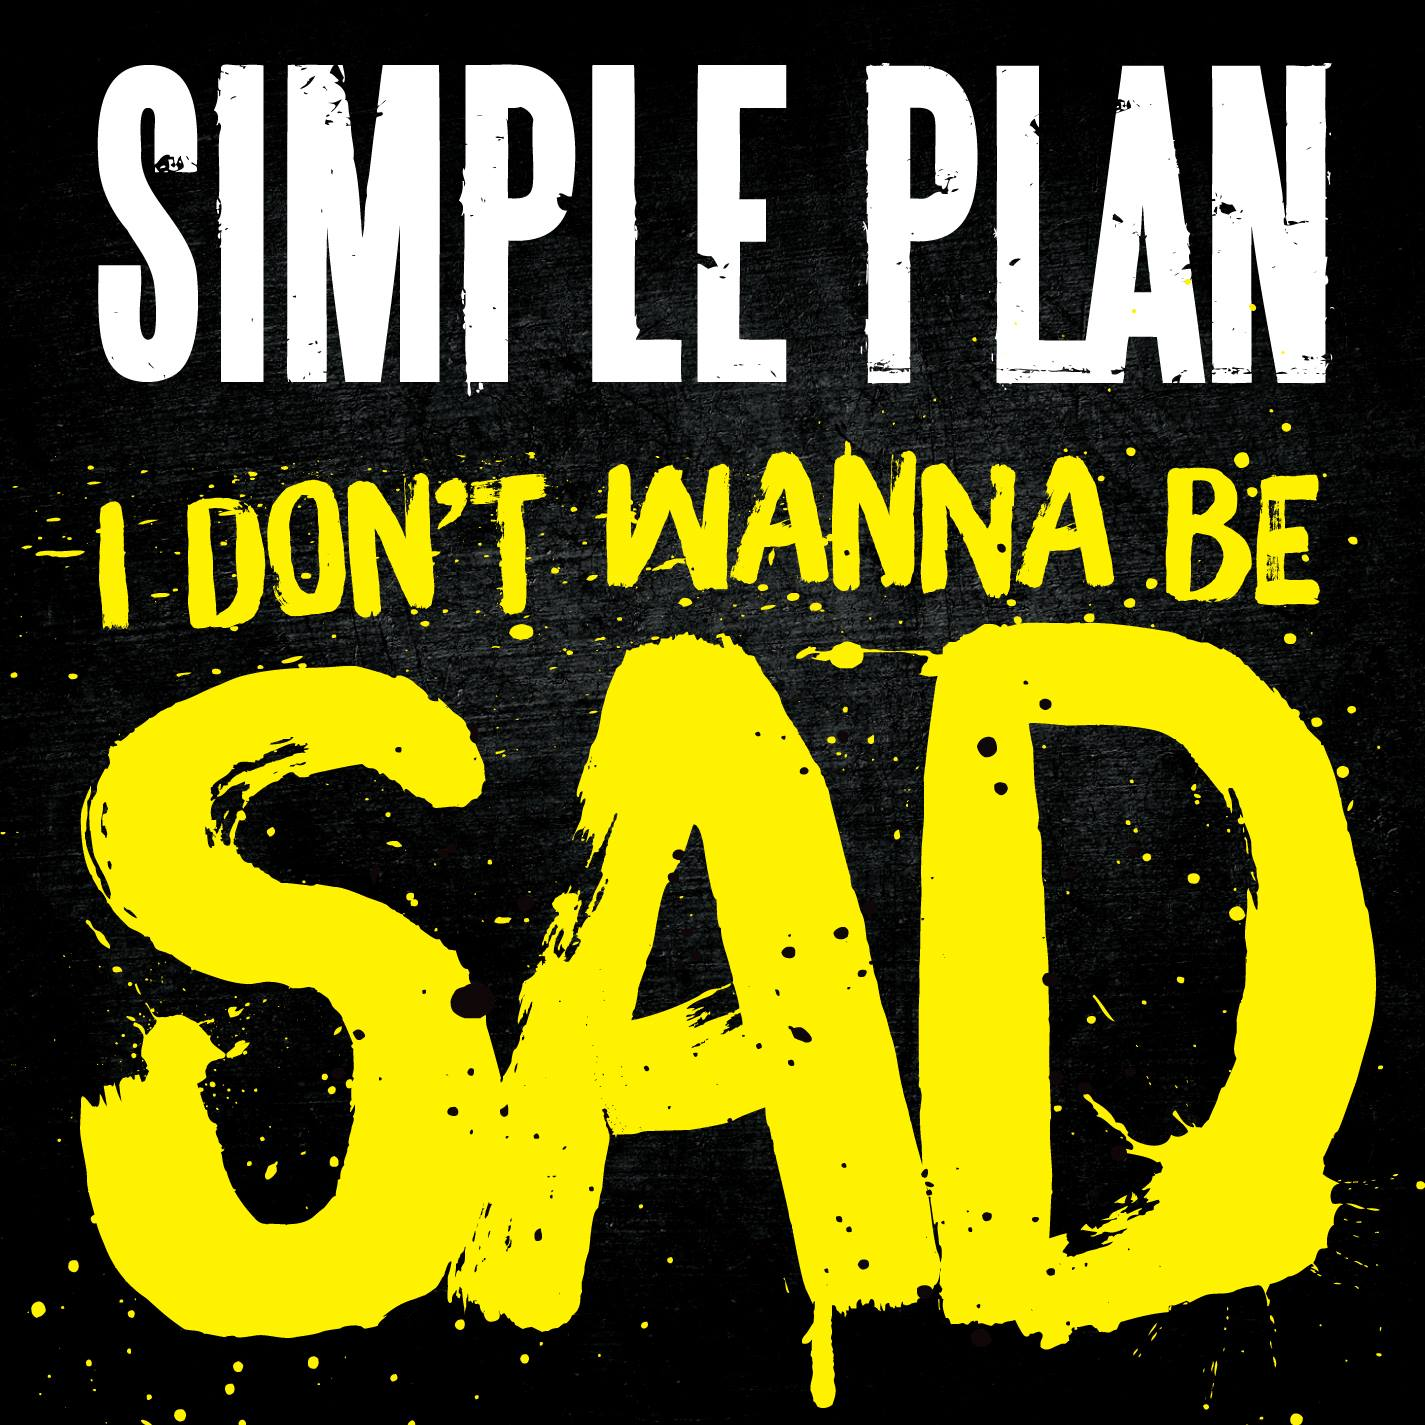 I Don't Wanna Be Sad by Simple Plan